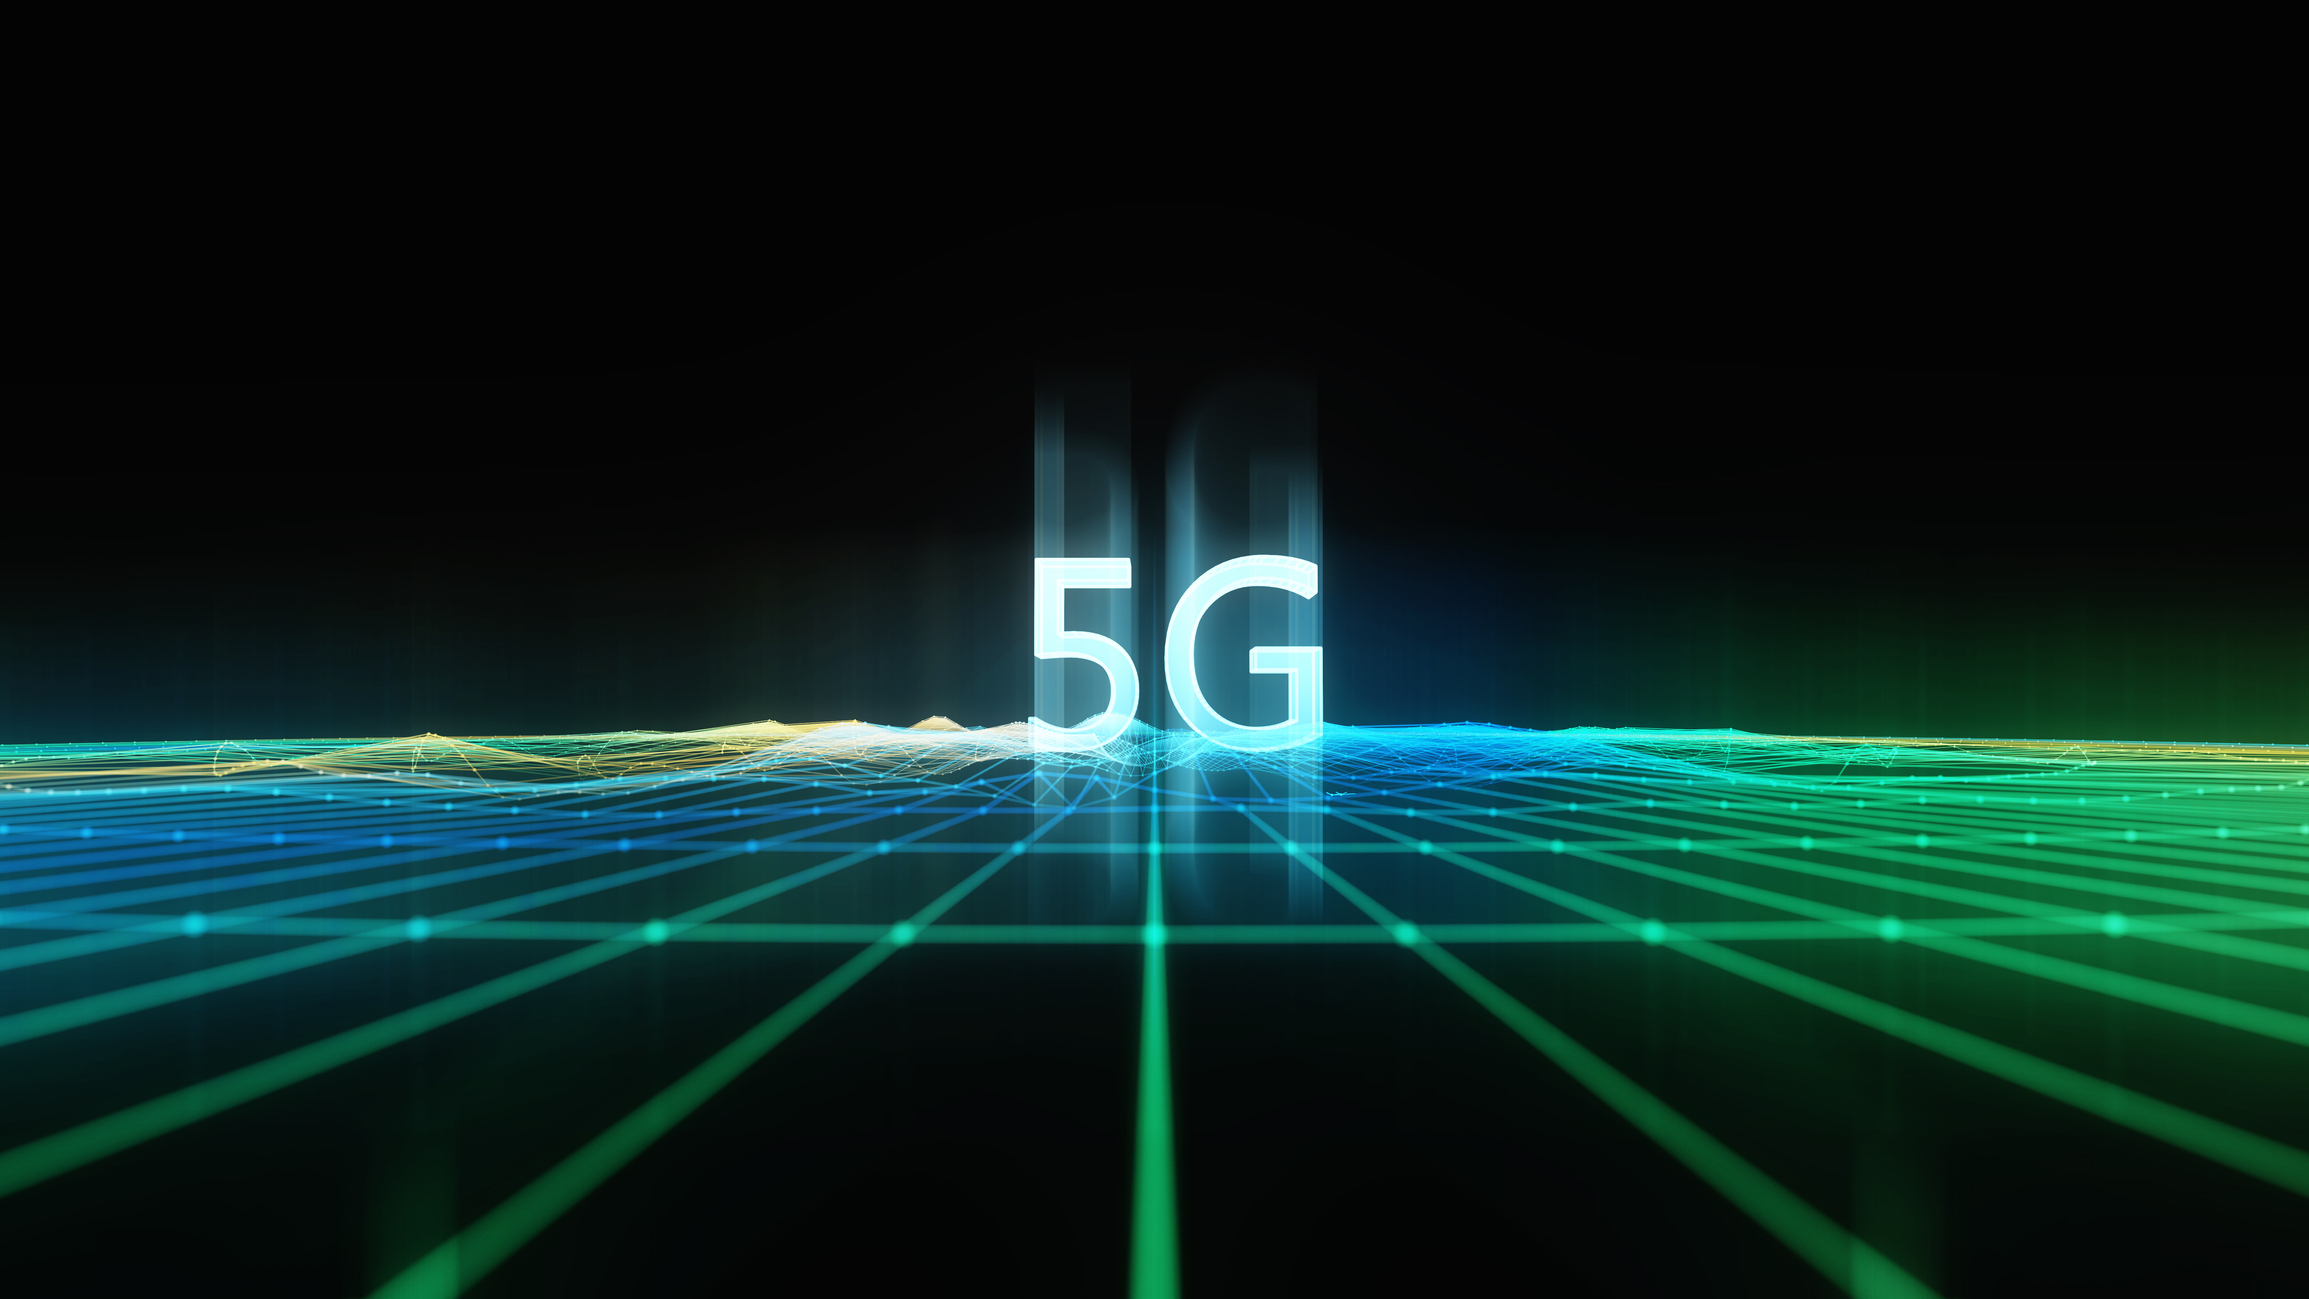 5g In Us Averages 51mbps While Other Countries Hit Hundreds Of Megabits Ars Technica